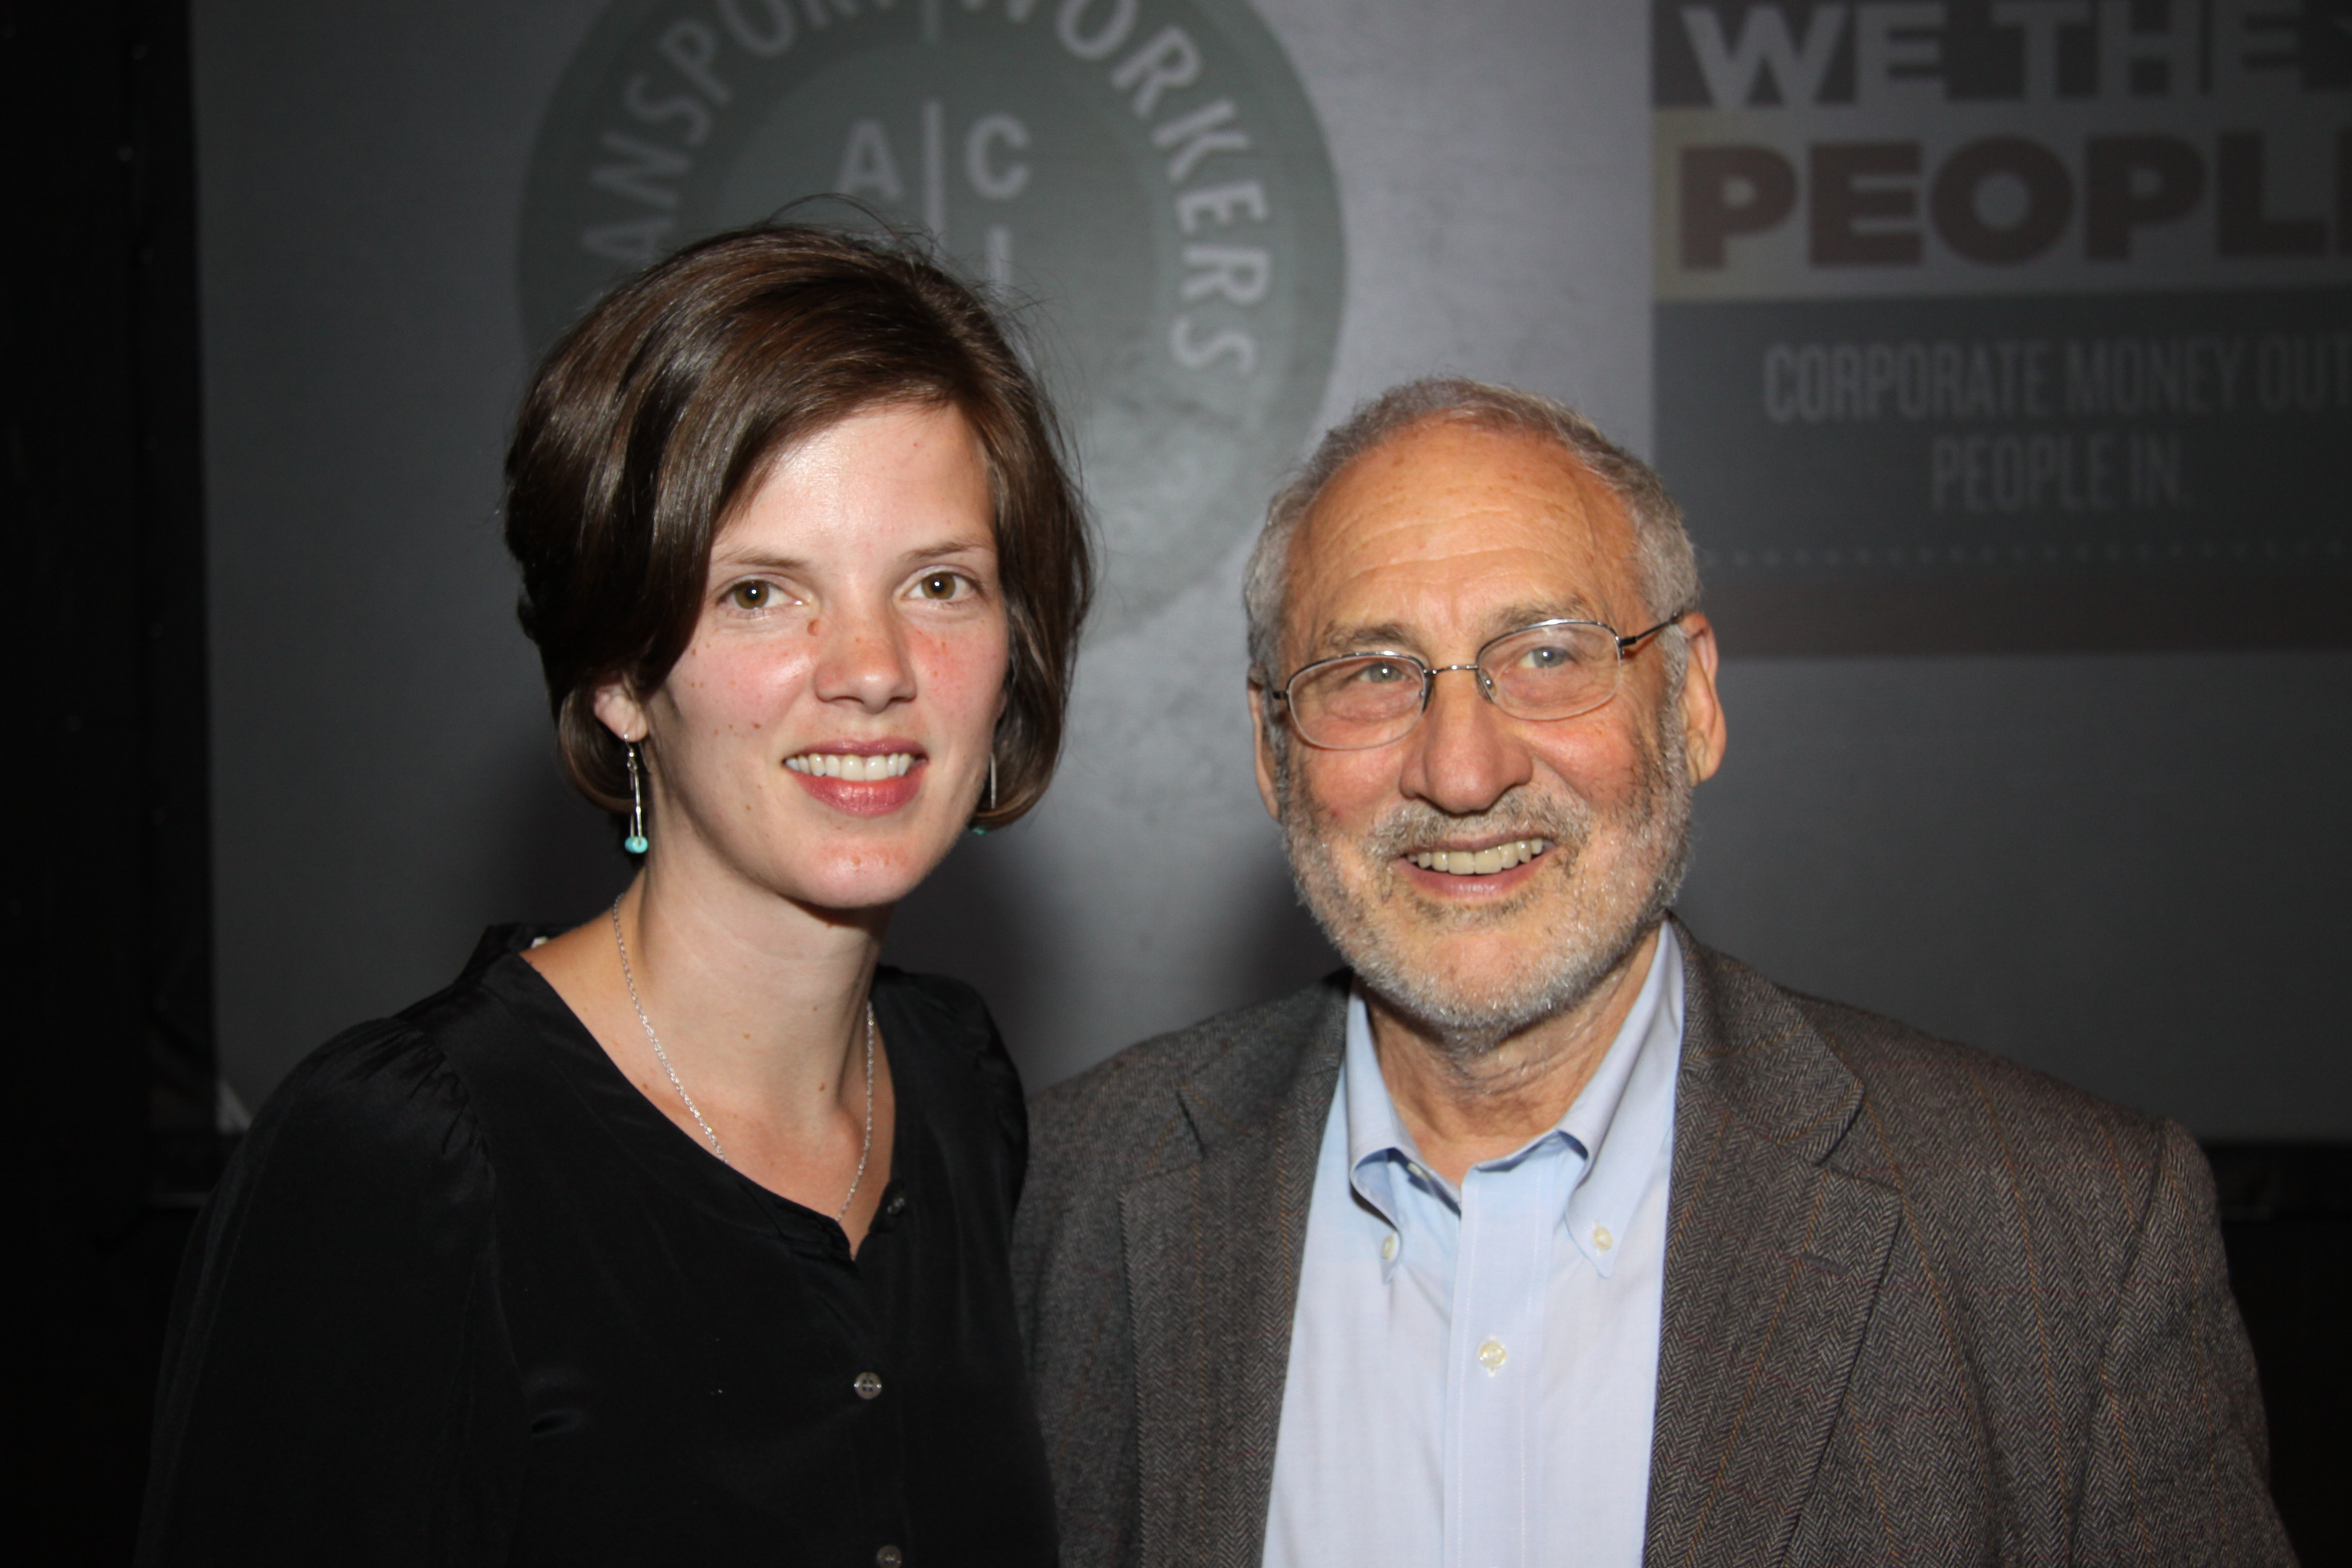 Kathleen Thompson and Joseph Stiglitz